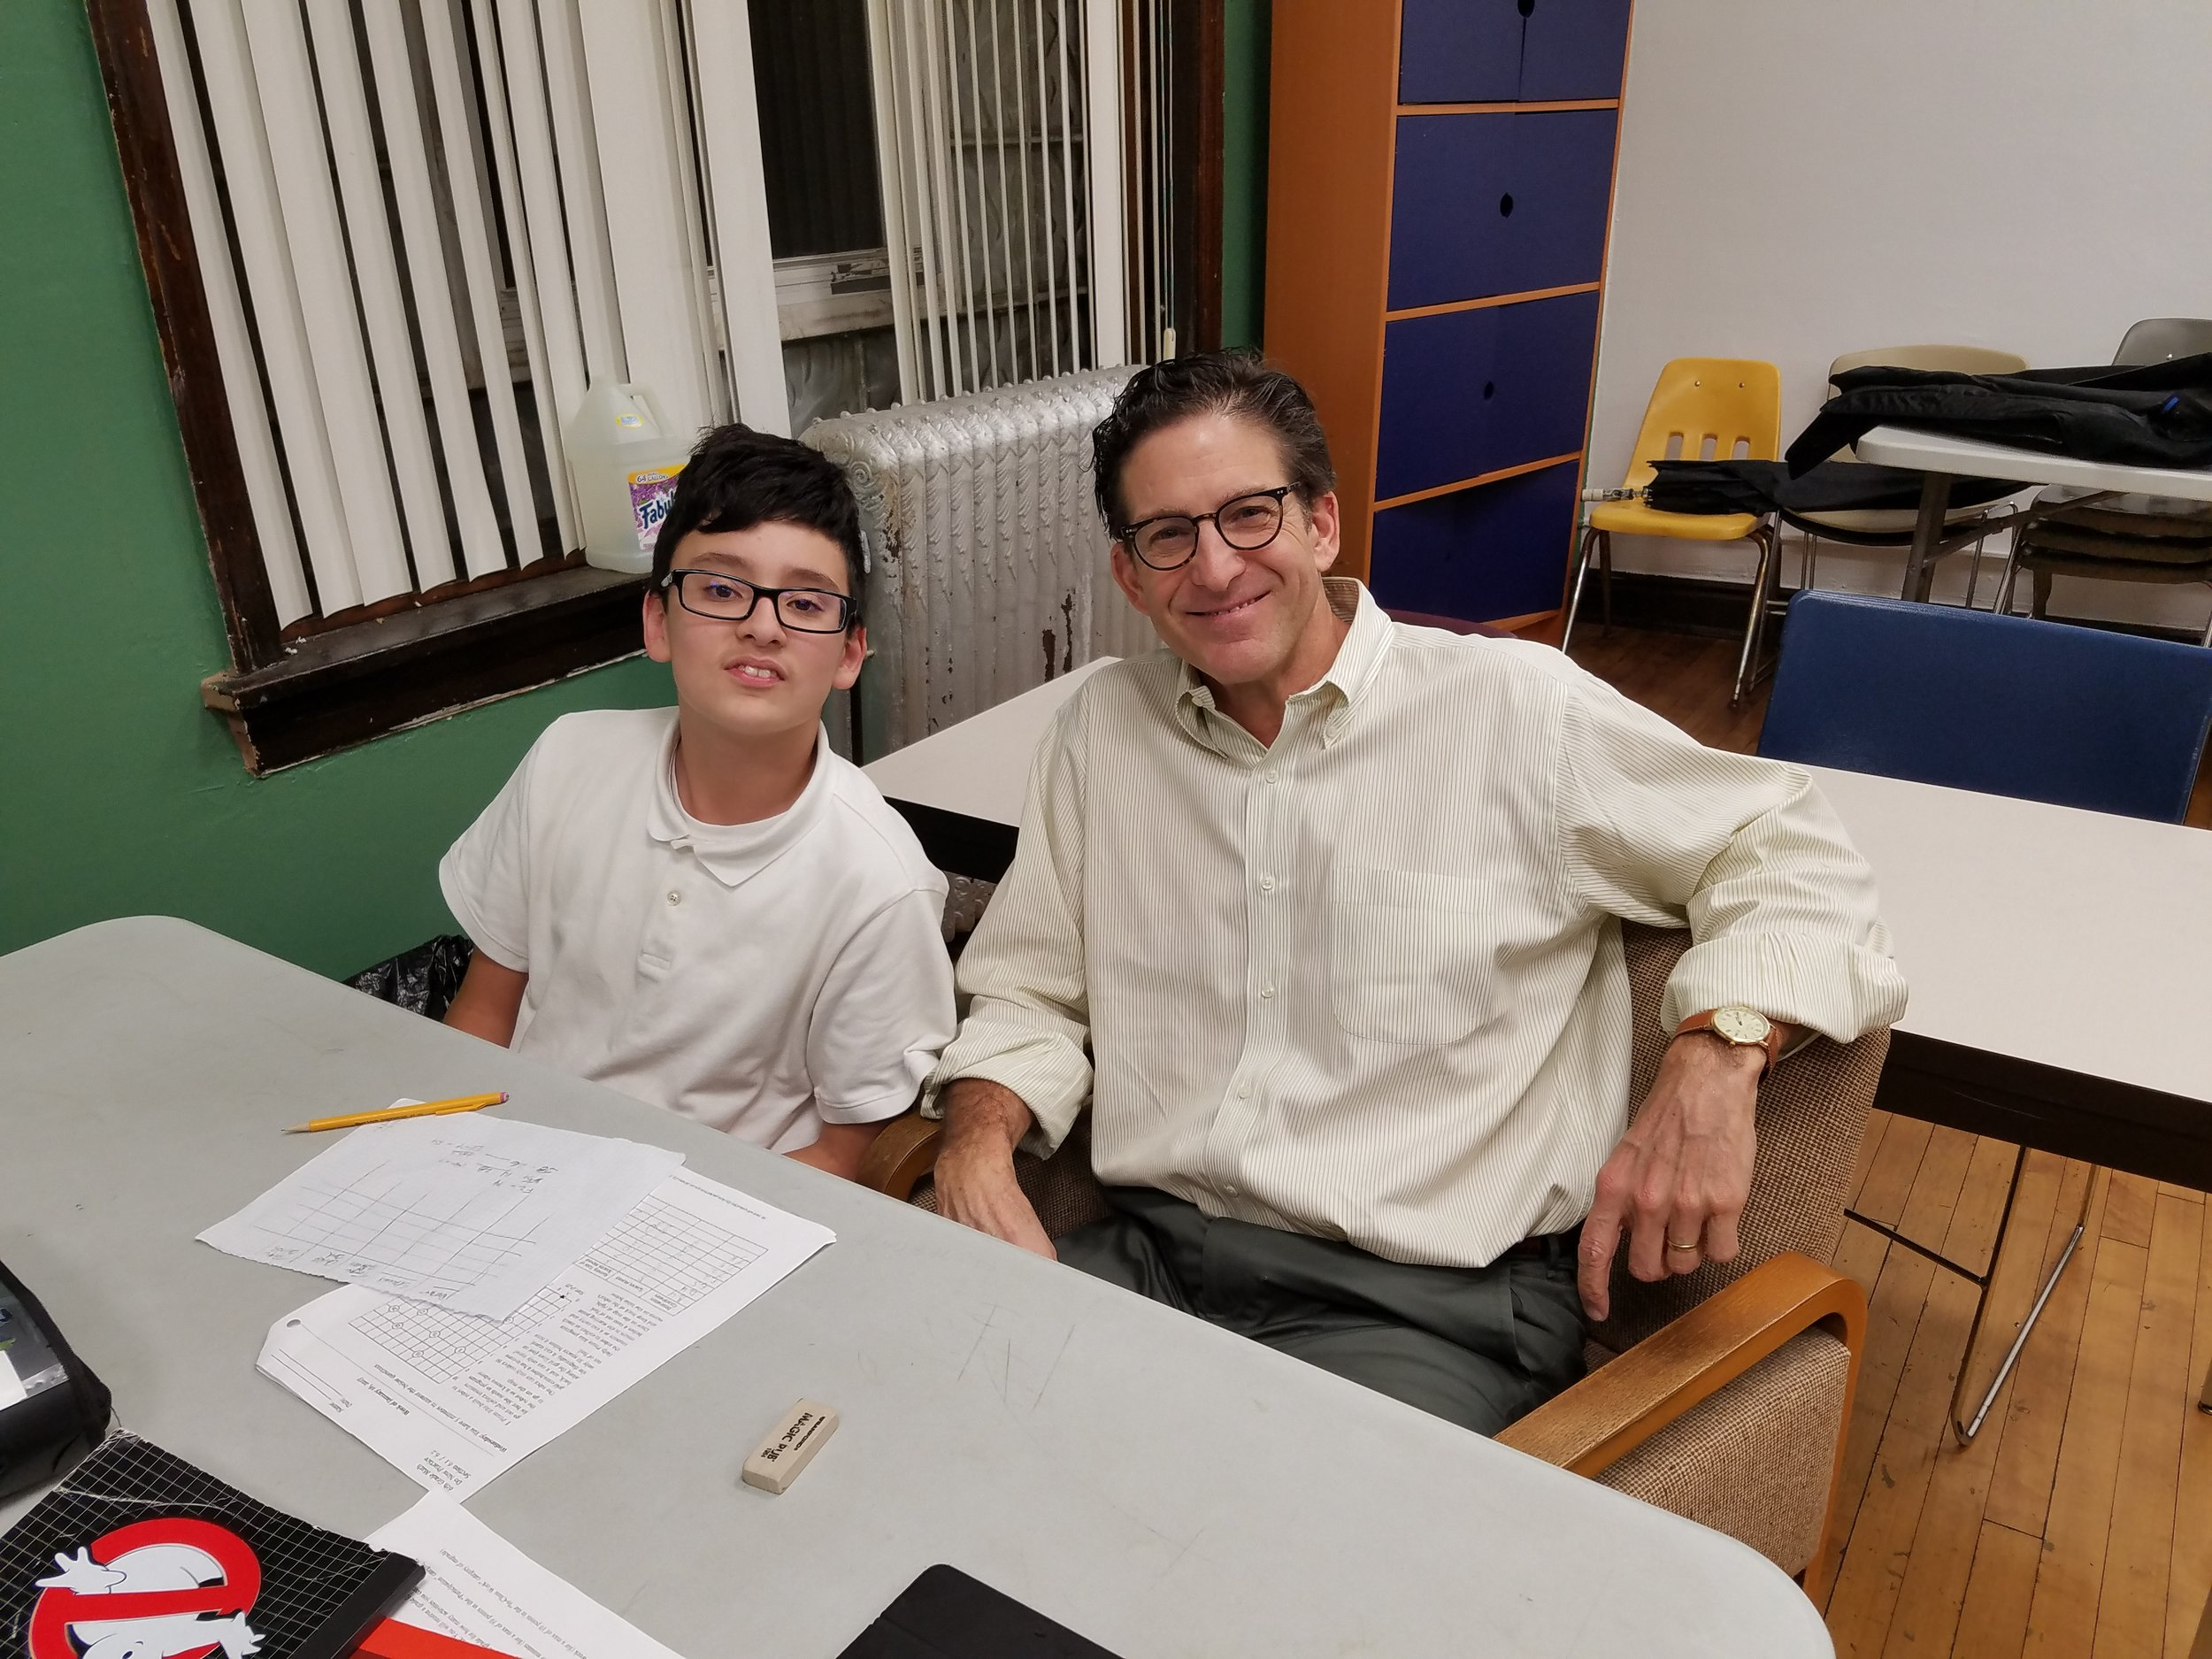 Mentor and Midtown Volunteer of the Year, Steve Hardy, with his mentee Antonio.